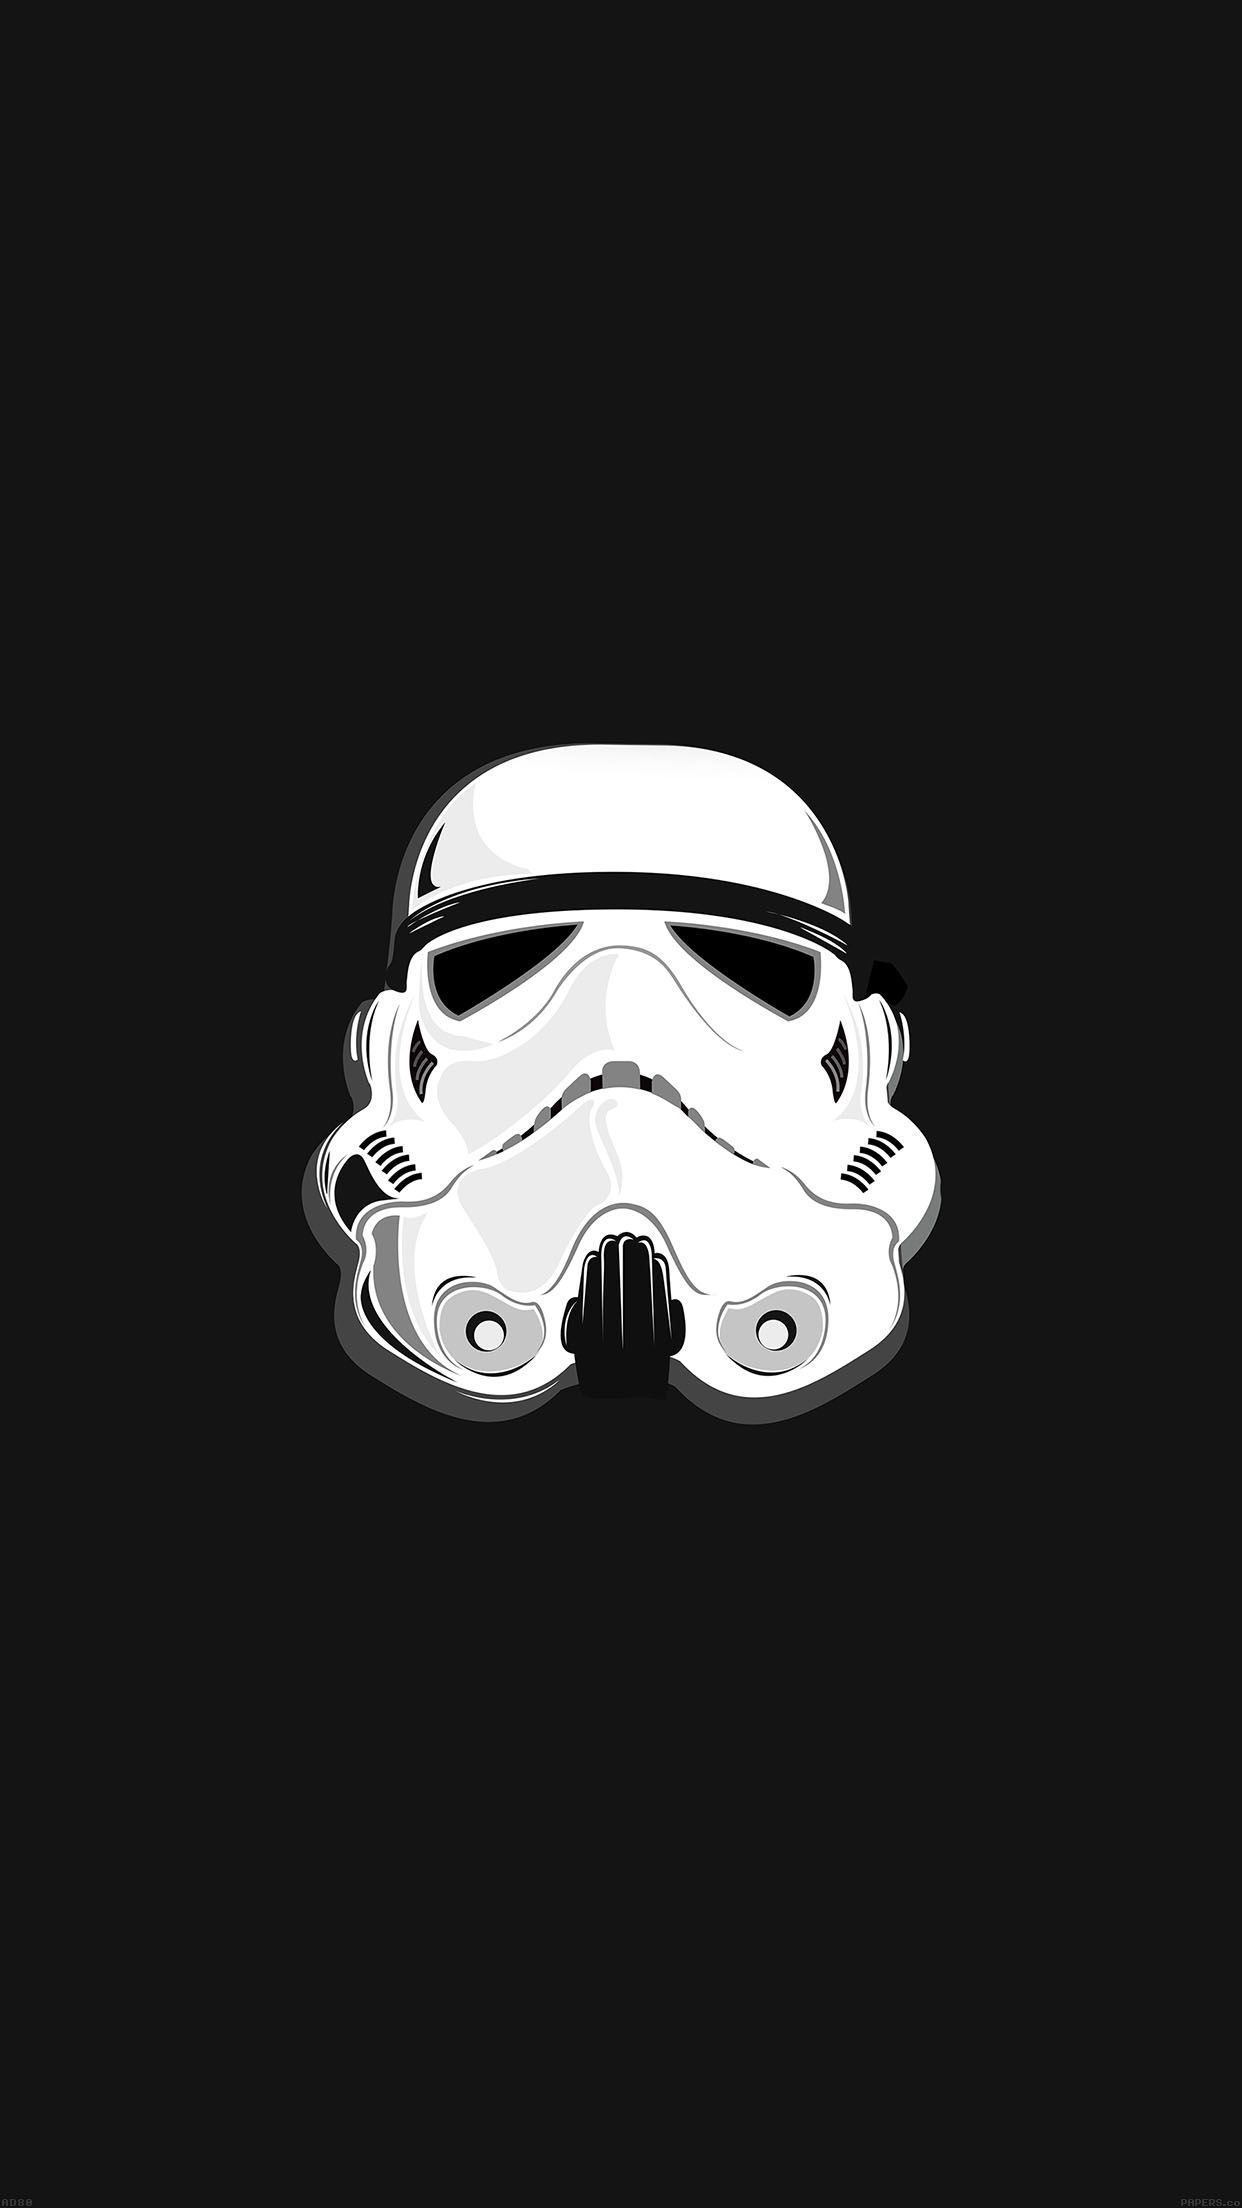 Star Wars wallpapers for iPhone and iPad 1242x2208